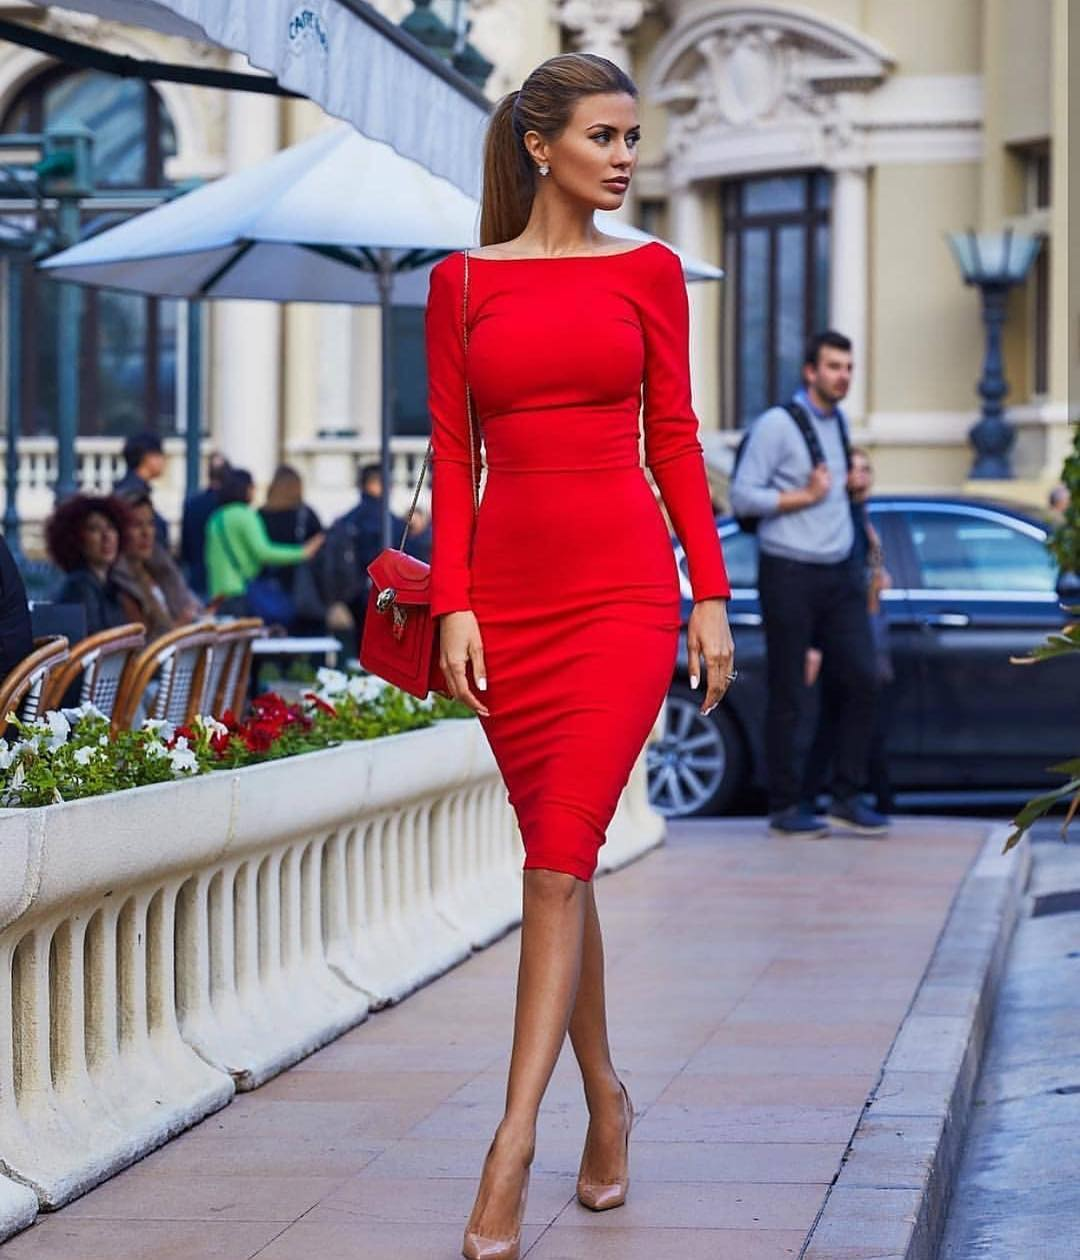 Boatneck Red Slim Dress With Long Sleeves For Fall 2020